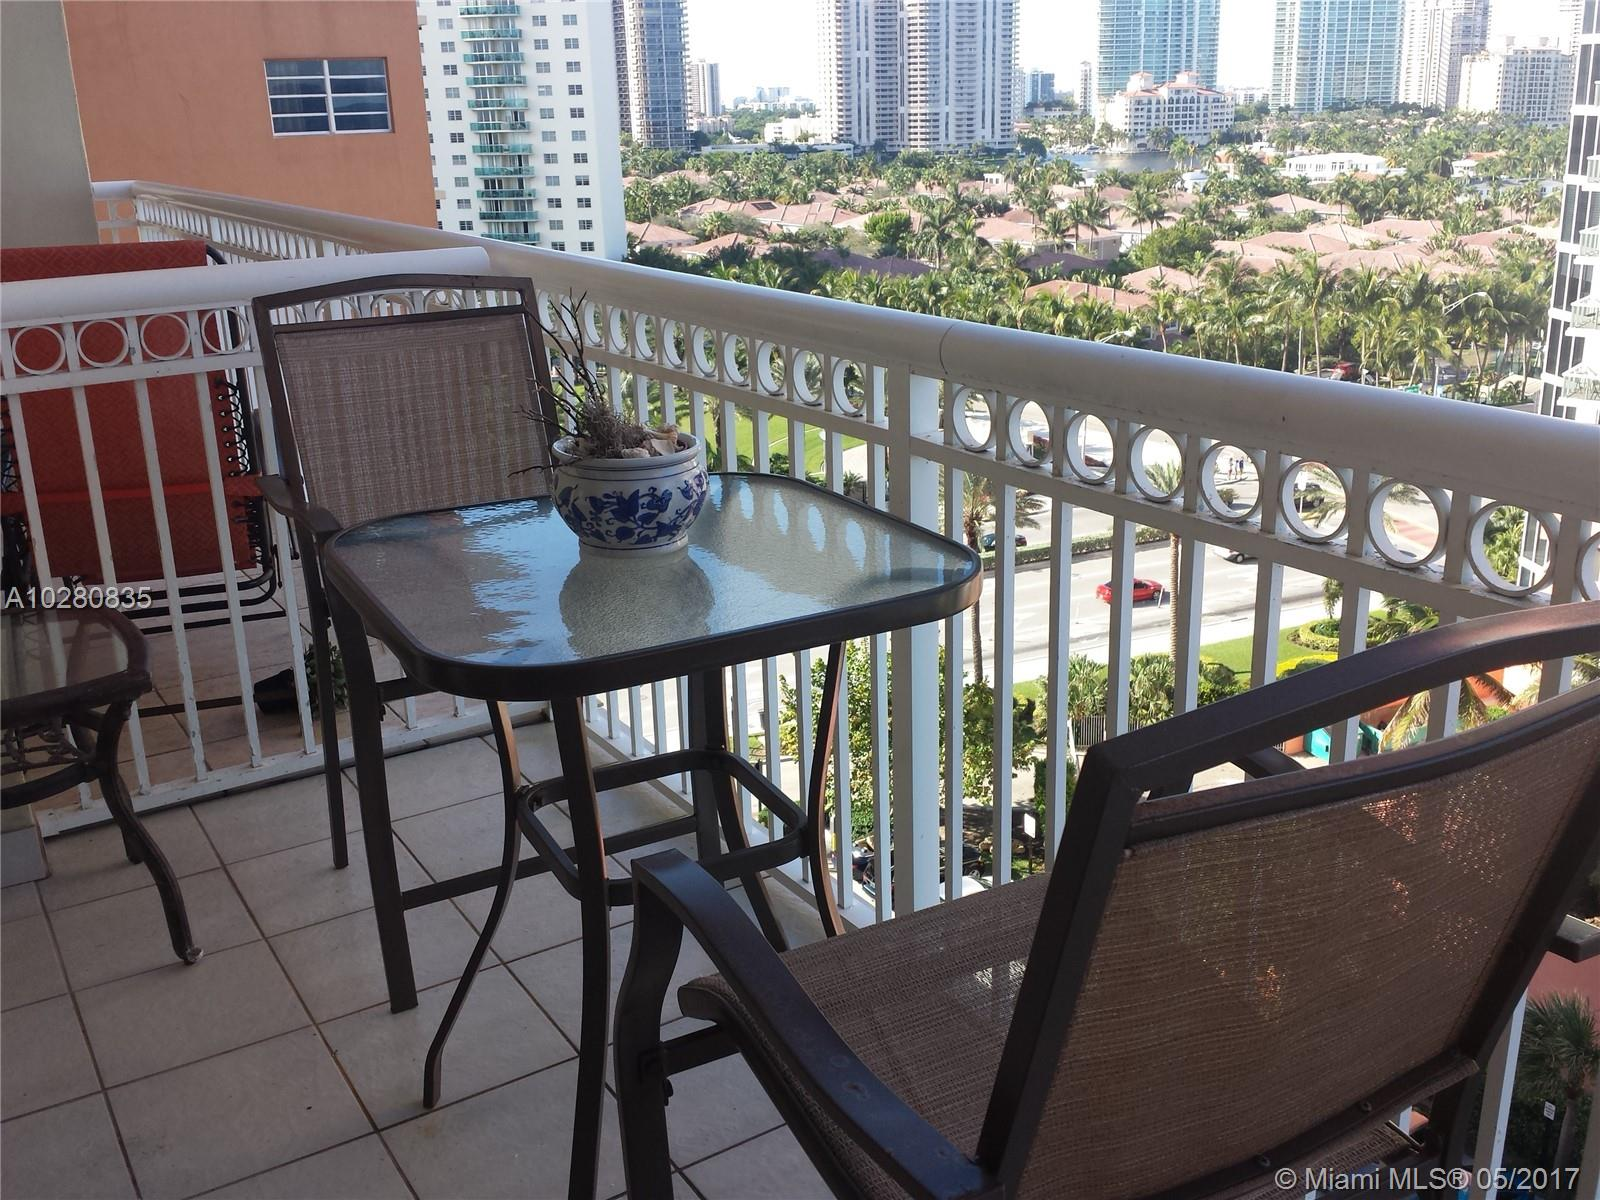 19201 Collins Ave # 920, Sunny Isles Beach, FL 33160